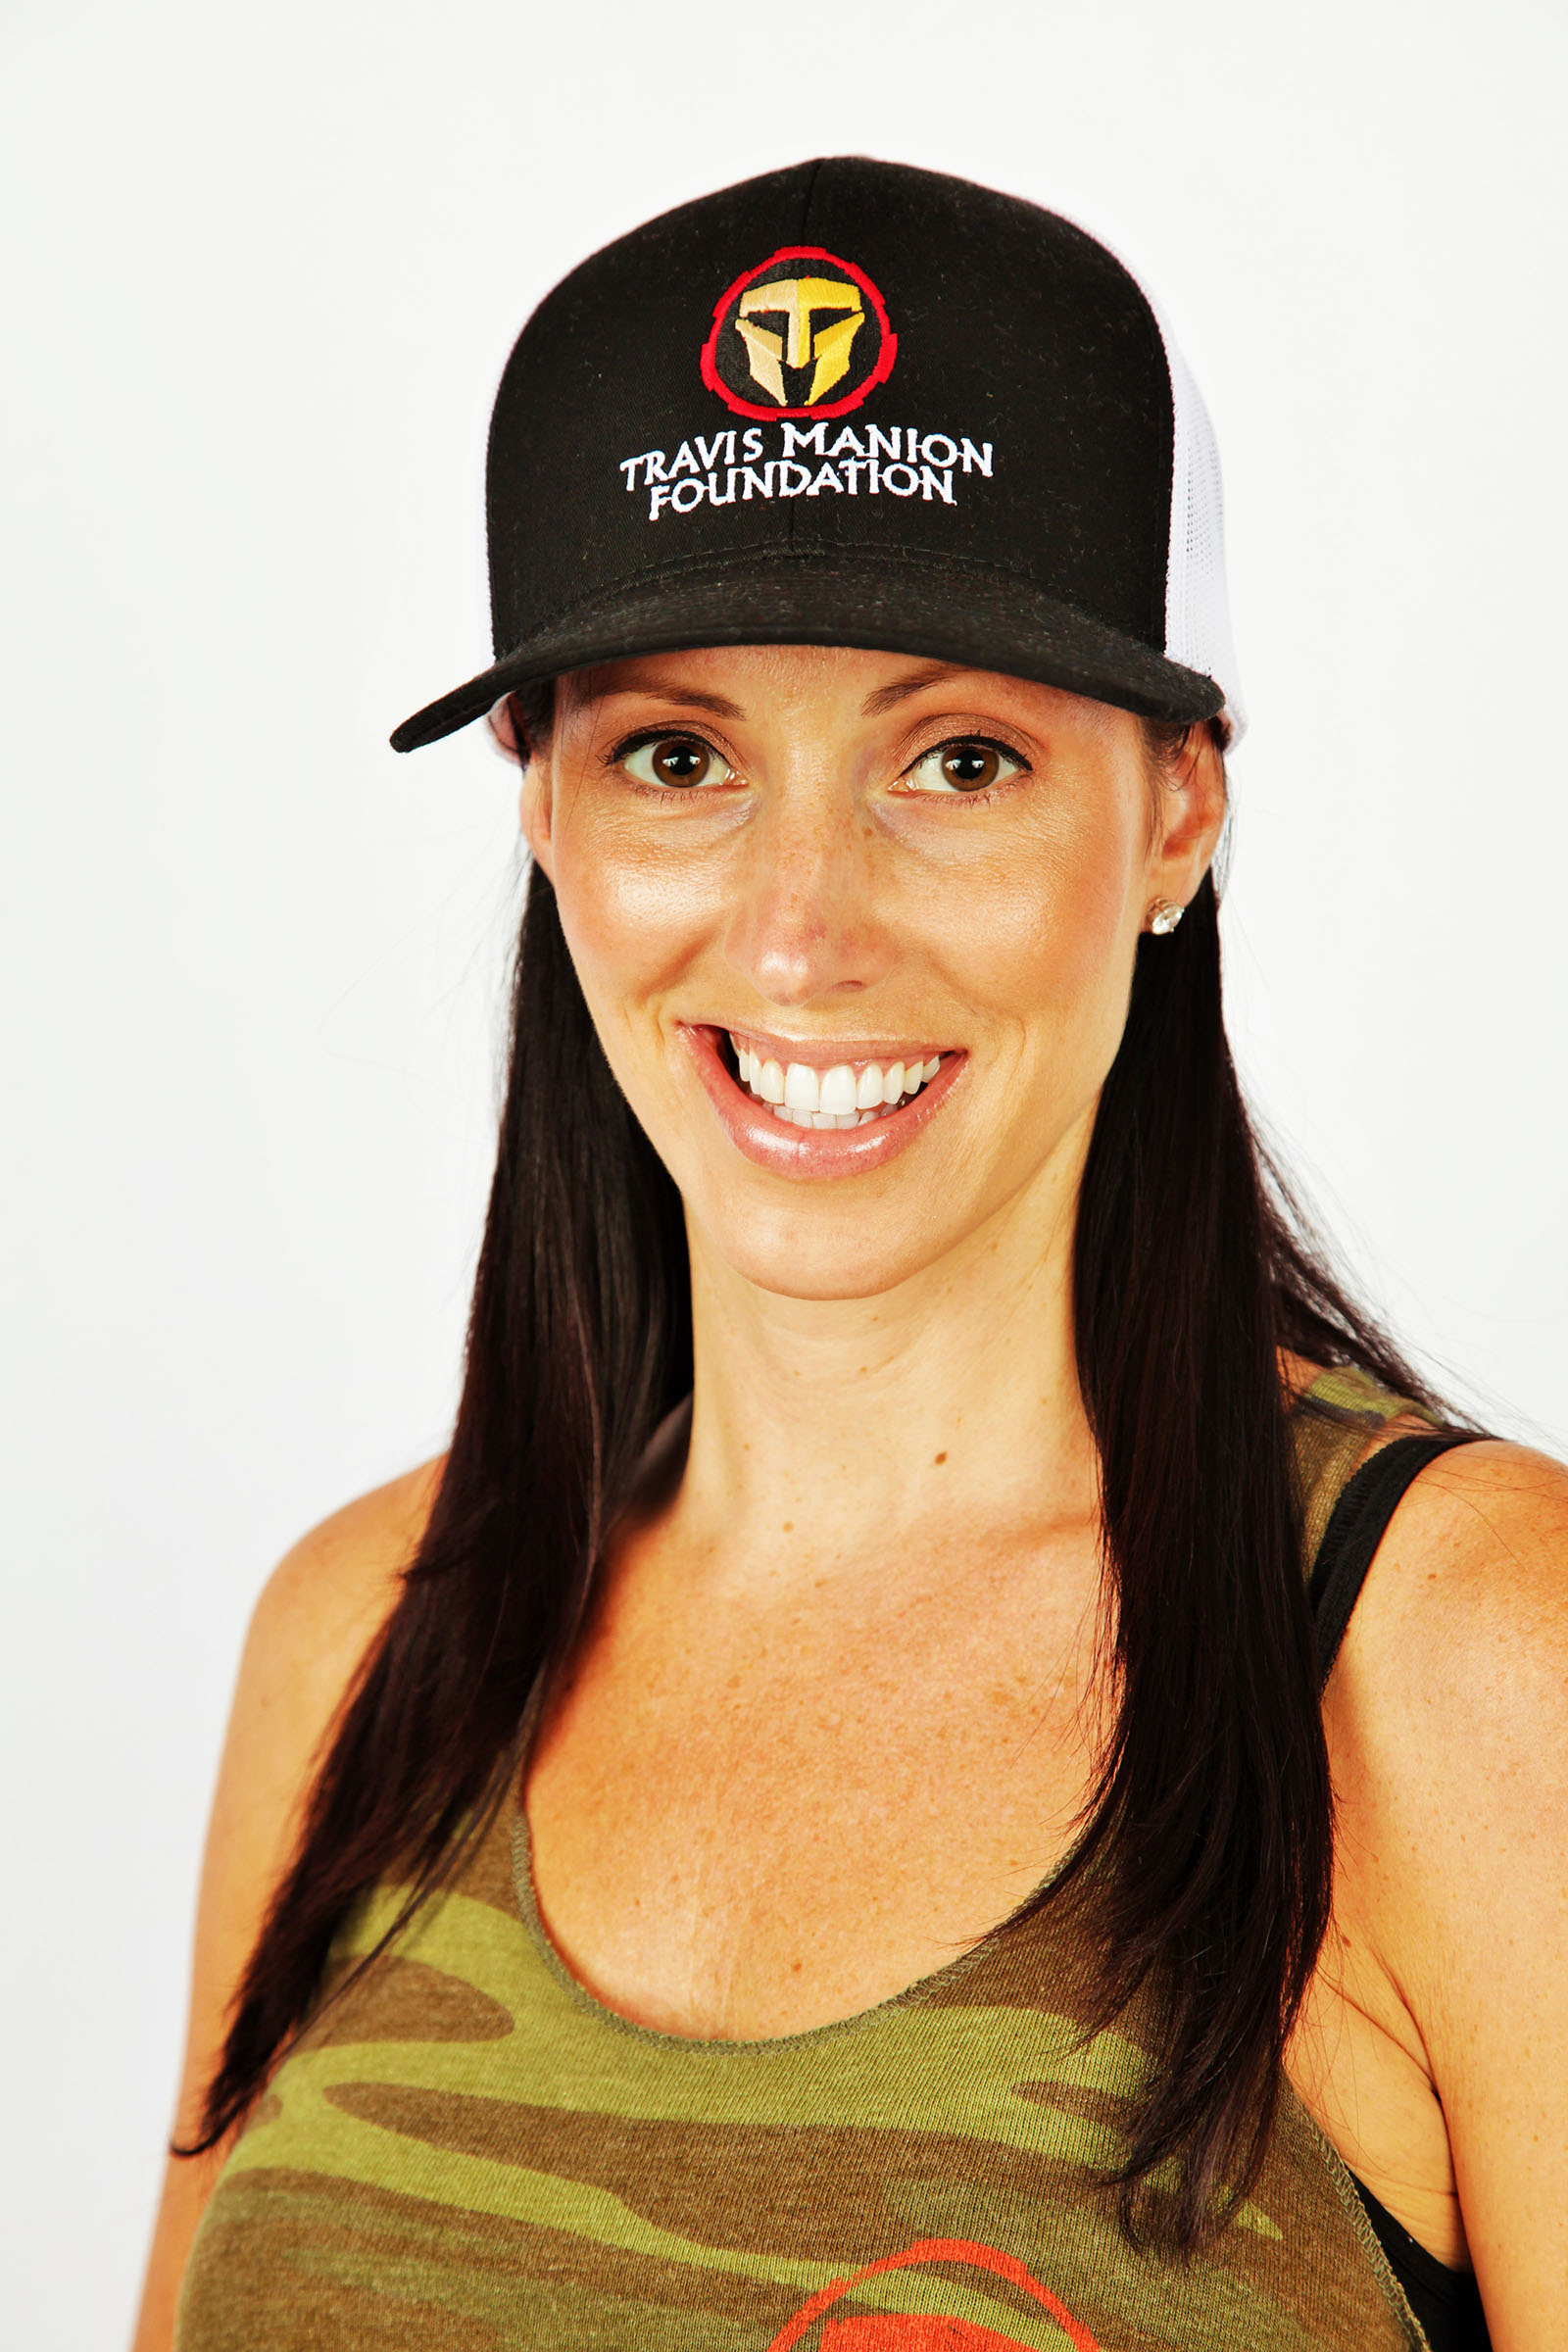 Travis Manion Foundation Unisex Trucker Mesh Hat